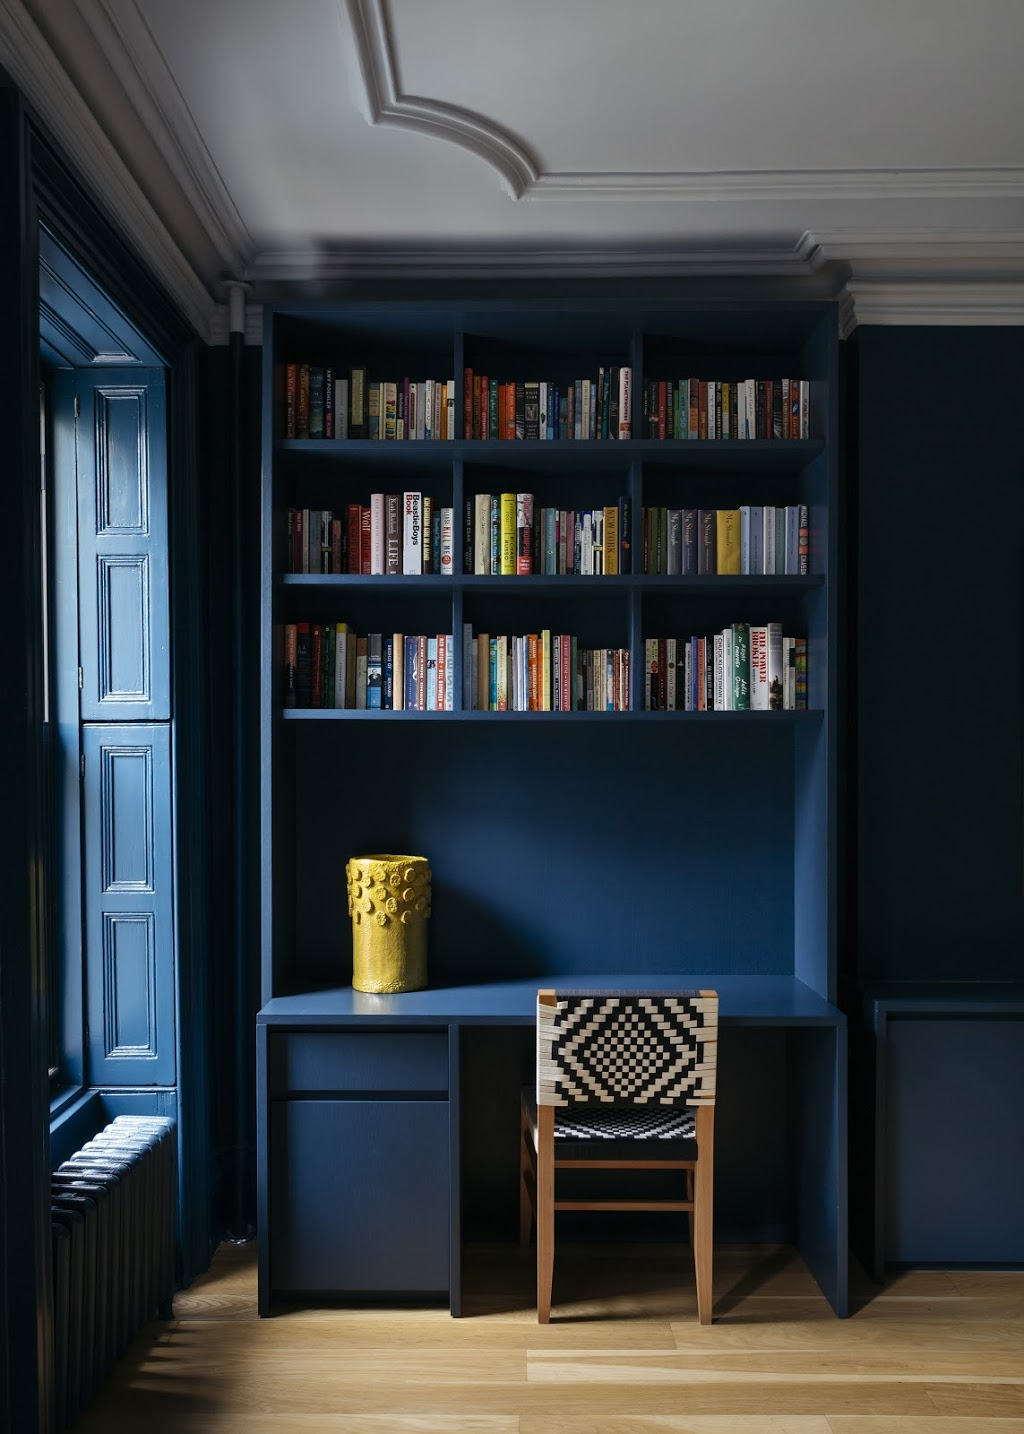 The built-ins, walls, even the shutters are all painted in Farrow & Ball's Hague Blue &#8